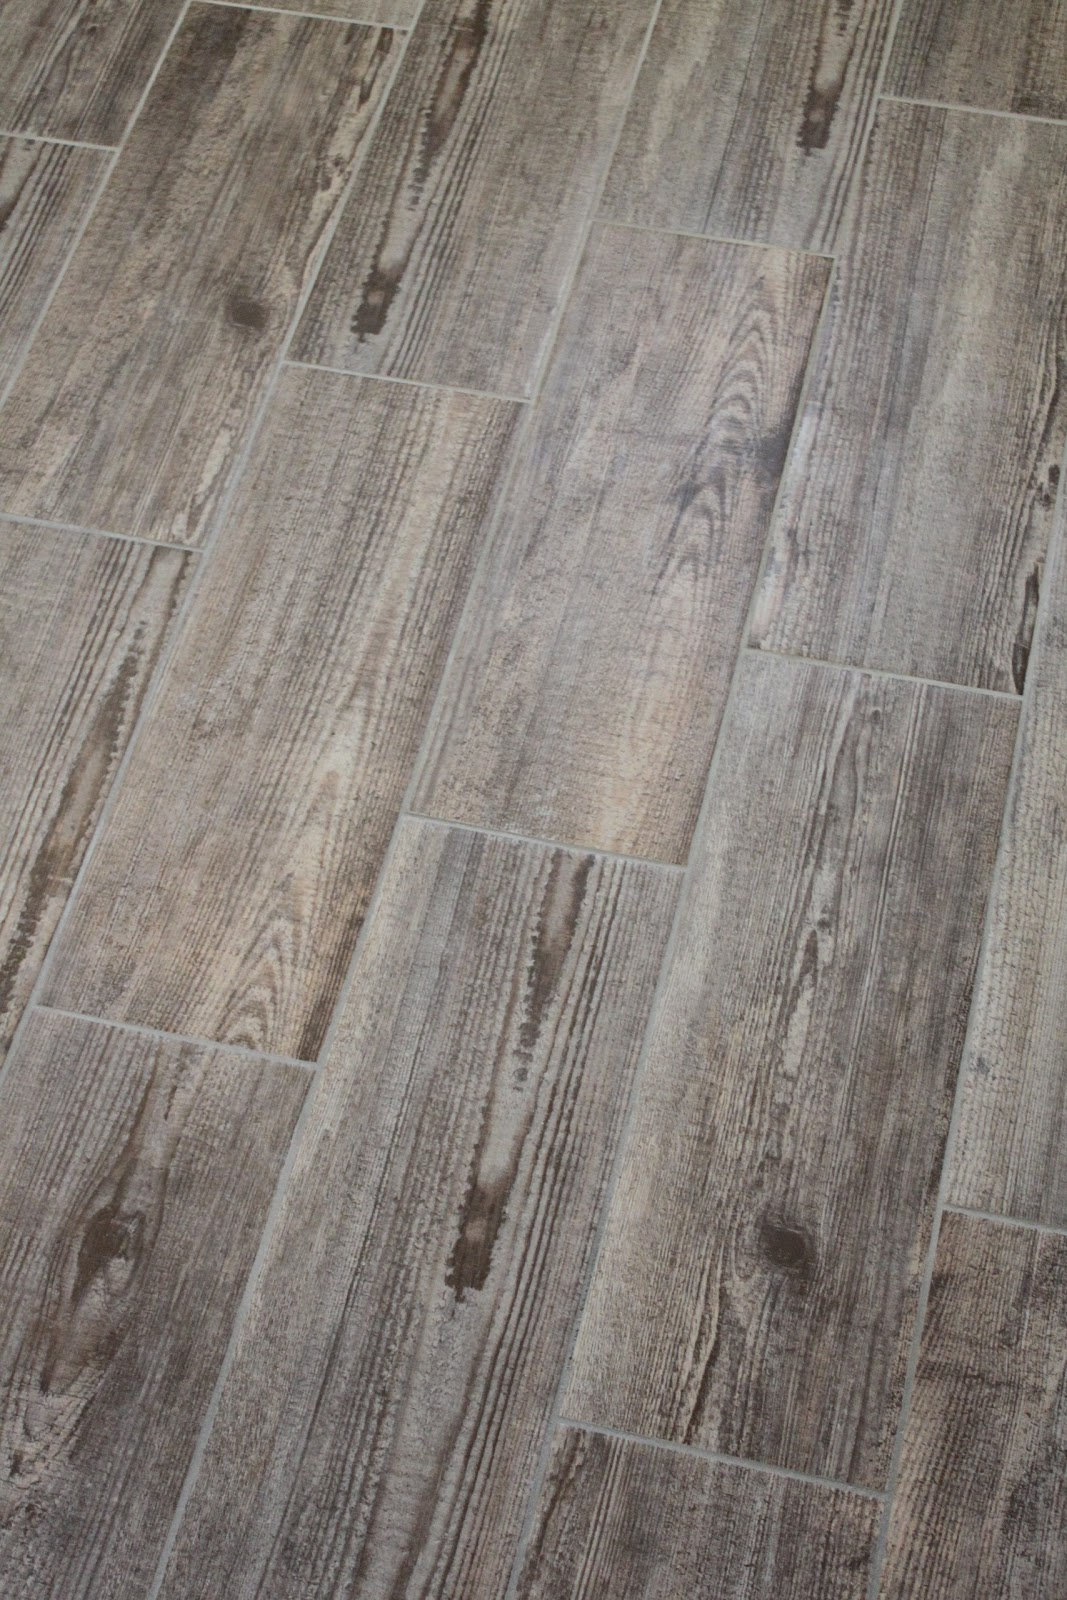 The Ceramic Tile Floor That Resembles Old Wood LOVE